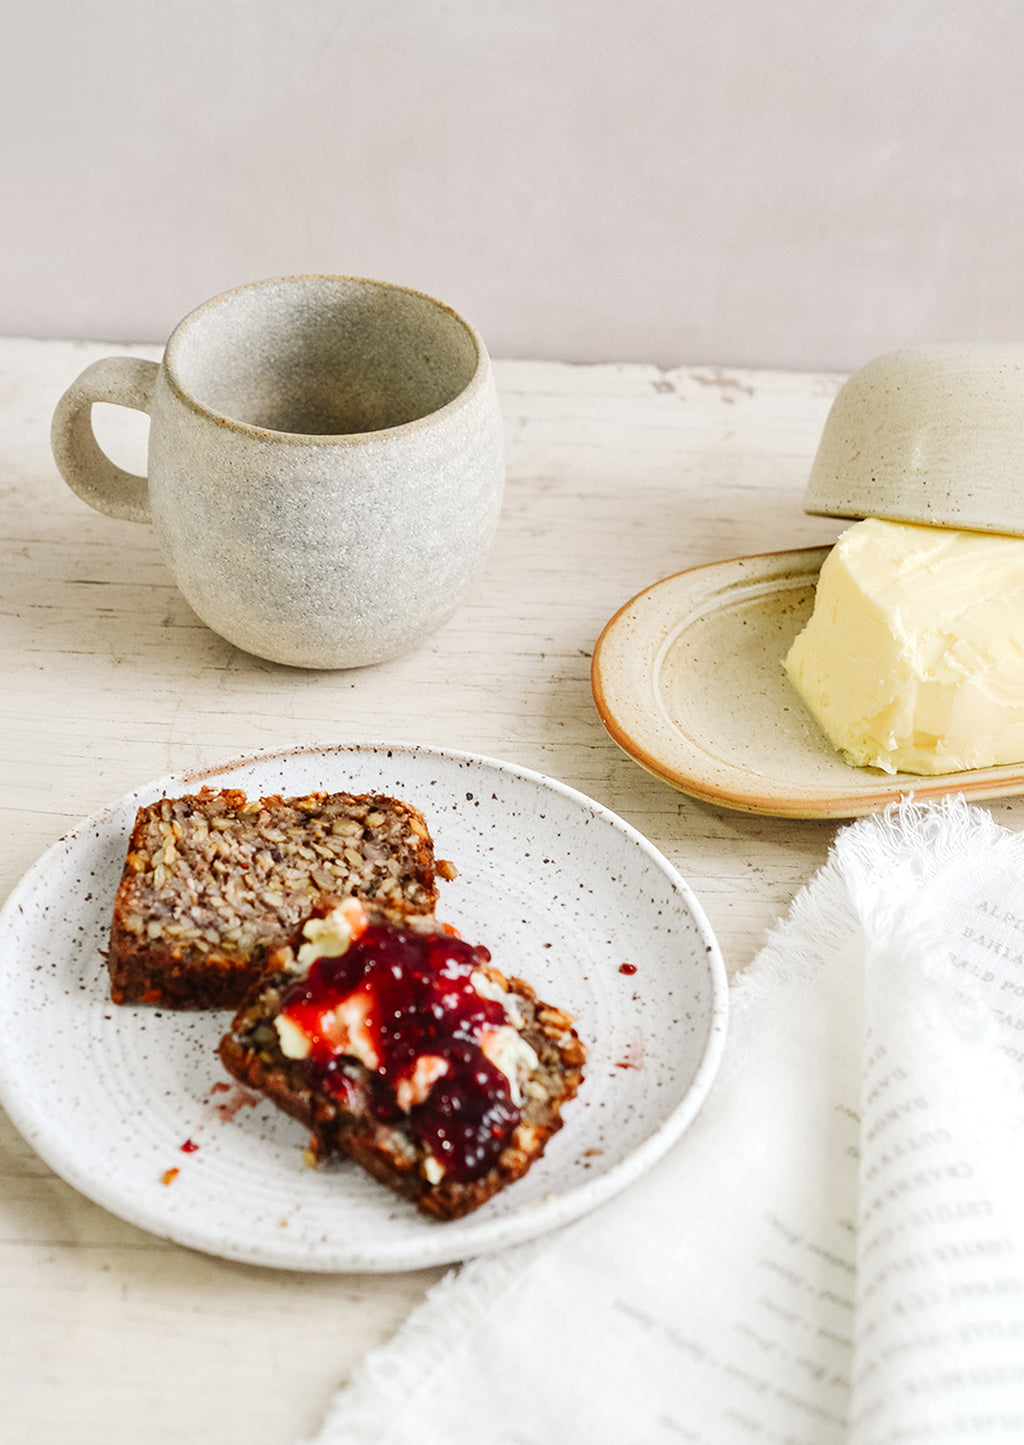 2: A breakfast tableware scene with coffee mug, butter dish and toast and jam on a ceramic plate.